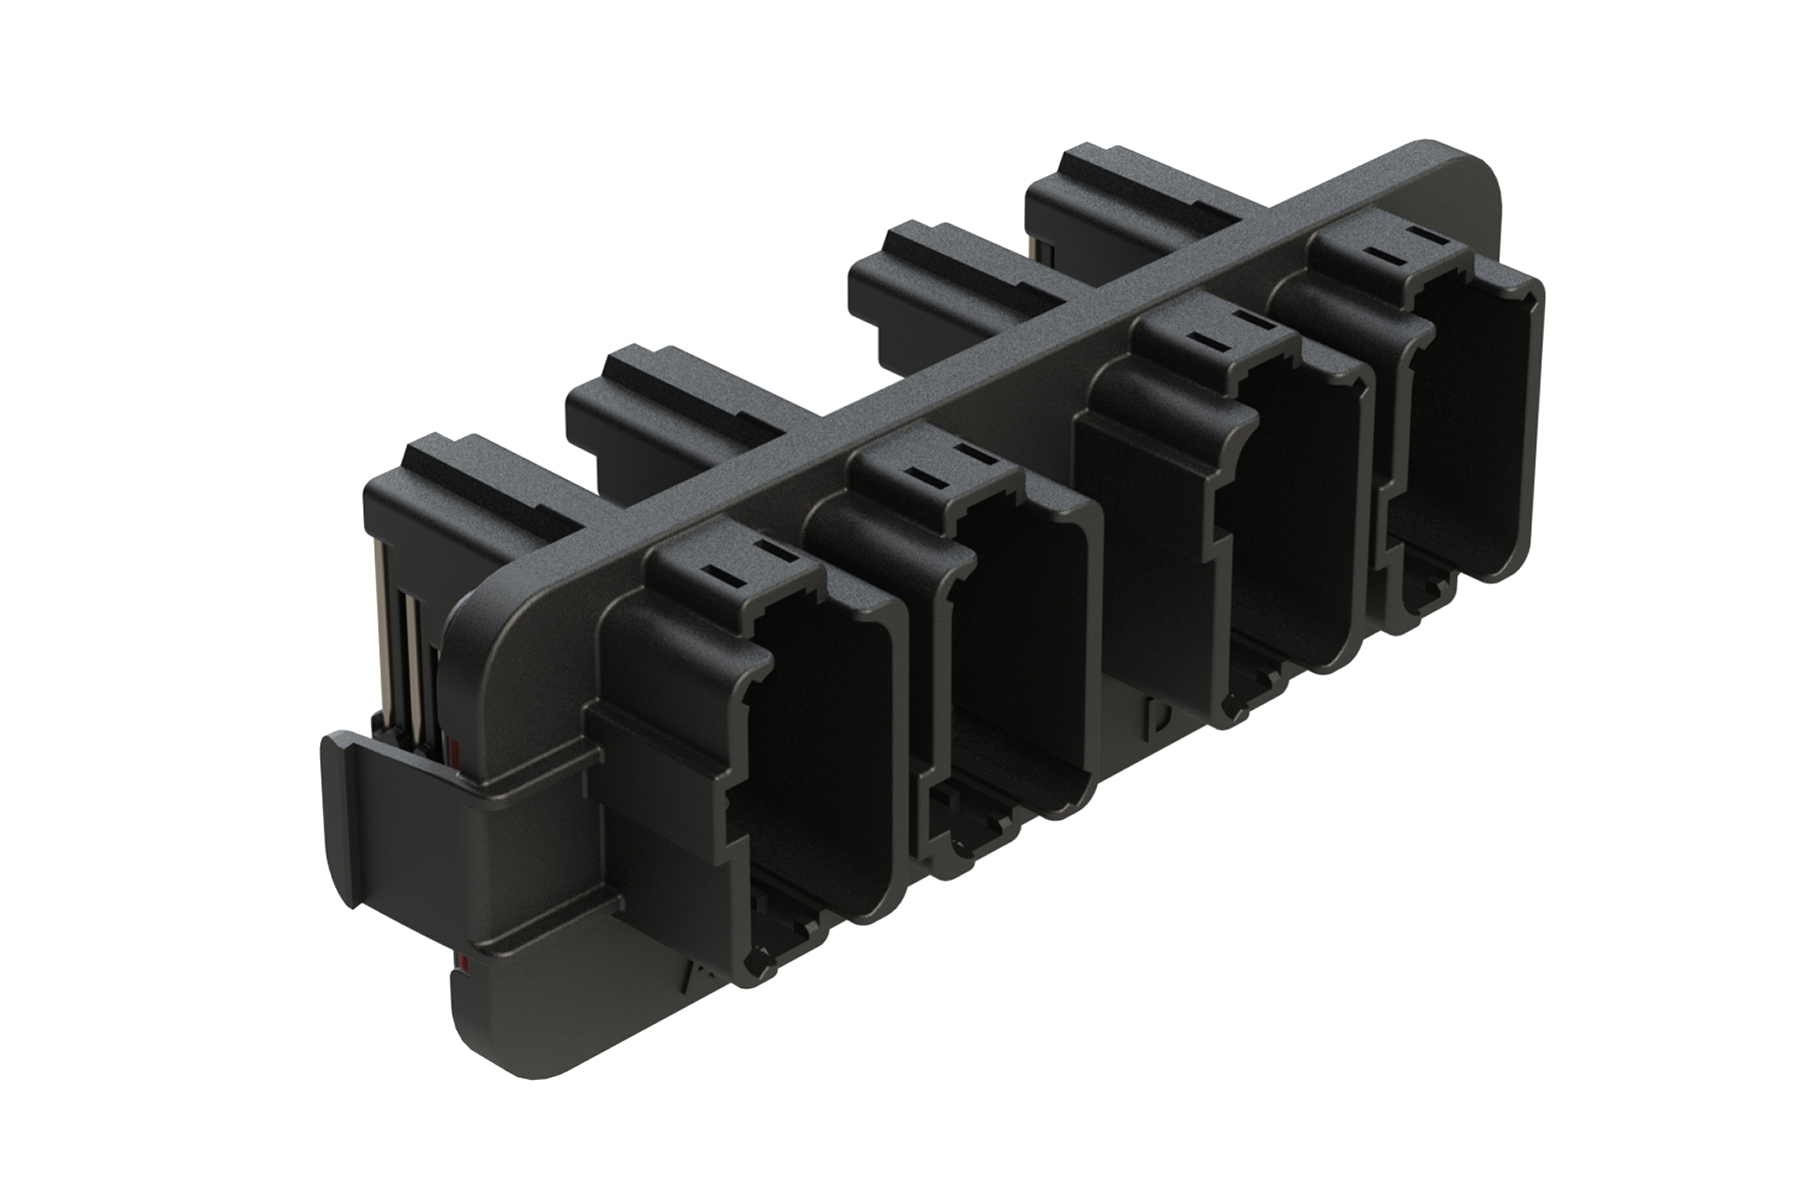 AT13-24PAB-BM03  AIPX AT Header Thermoplastic 2X12 SIZE 16 AB Key, Tin Plating, Black. Comparable to PN# DT13-24PAB-R015